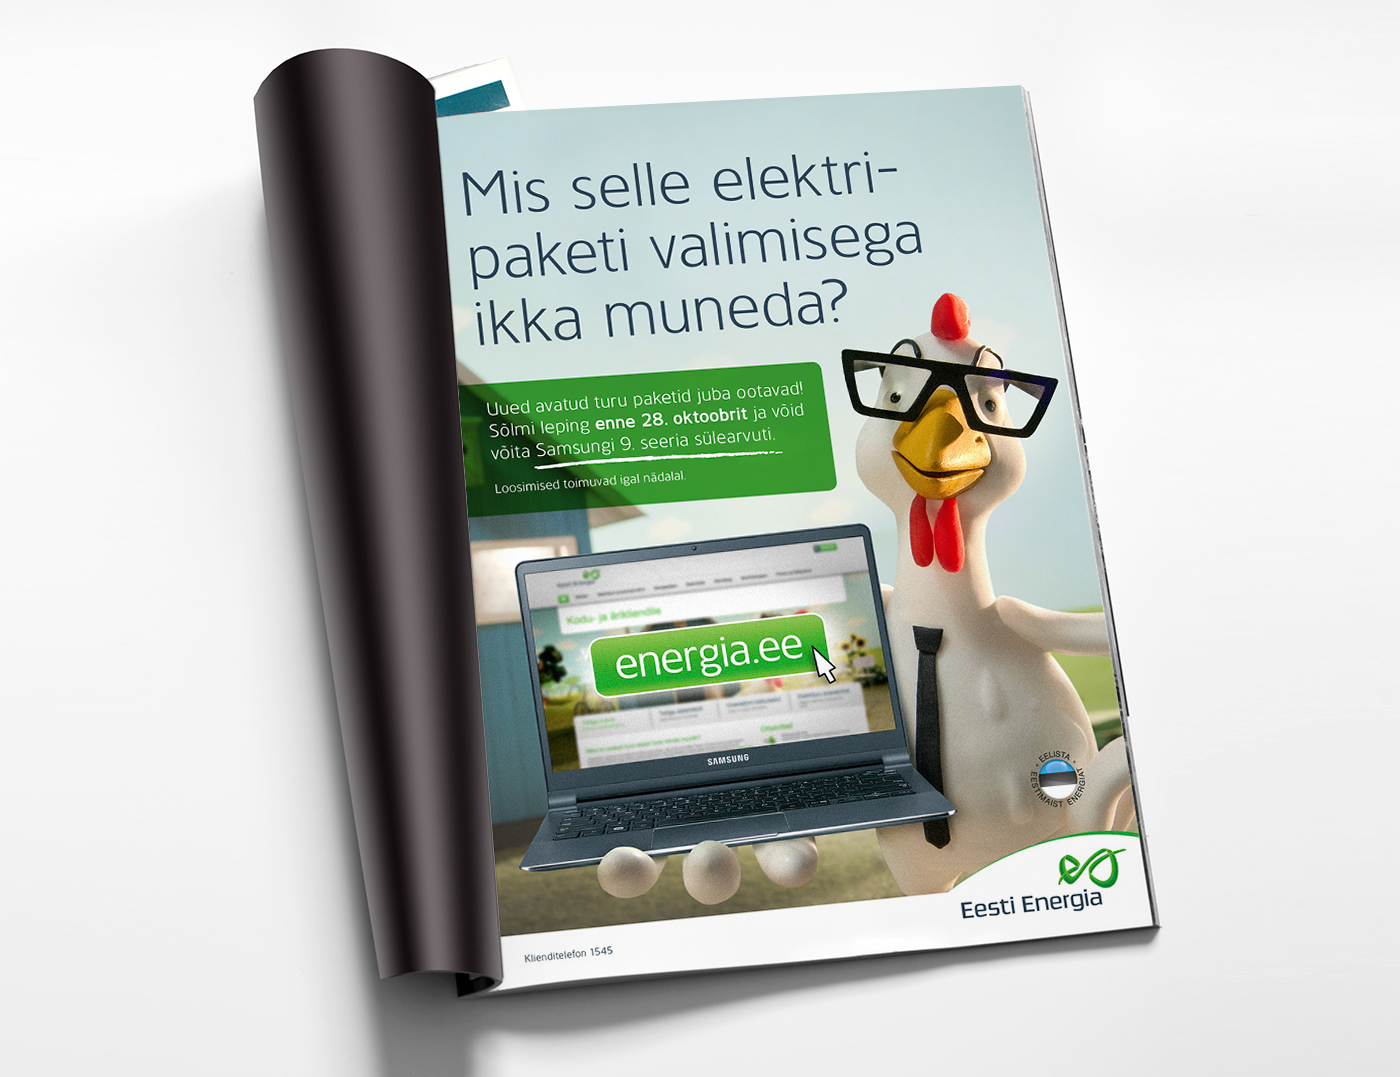 Eesti Energia – The Electricity Market is Now Open